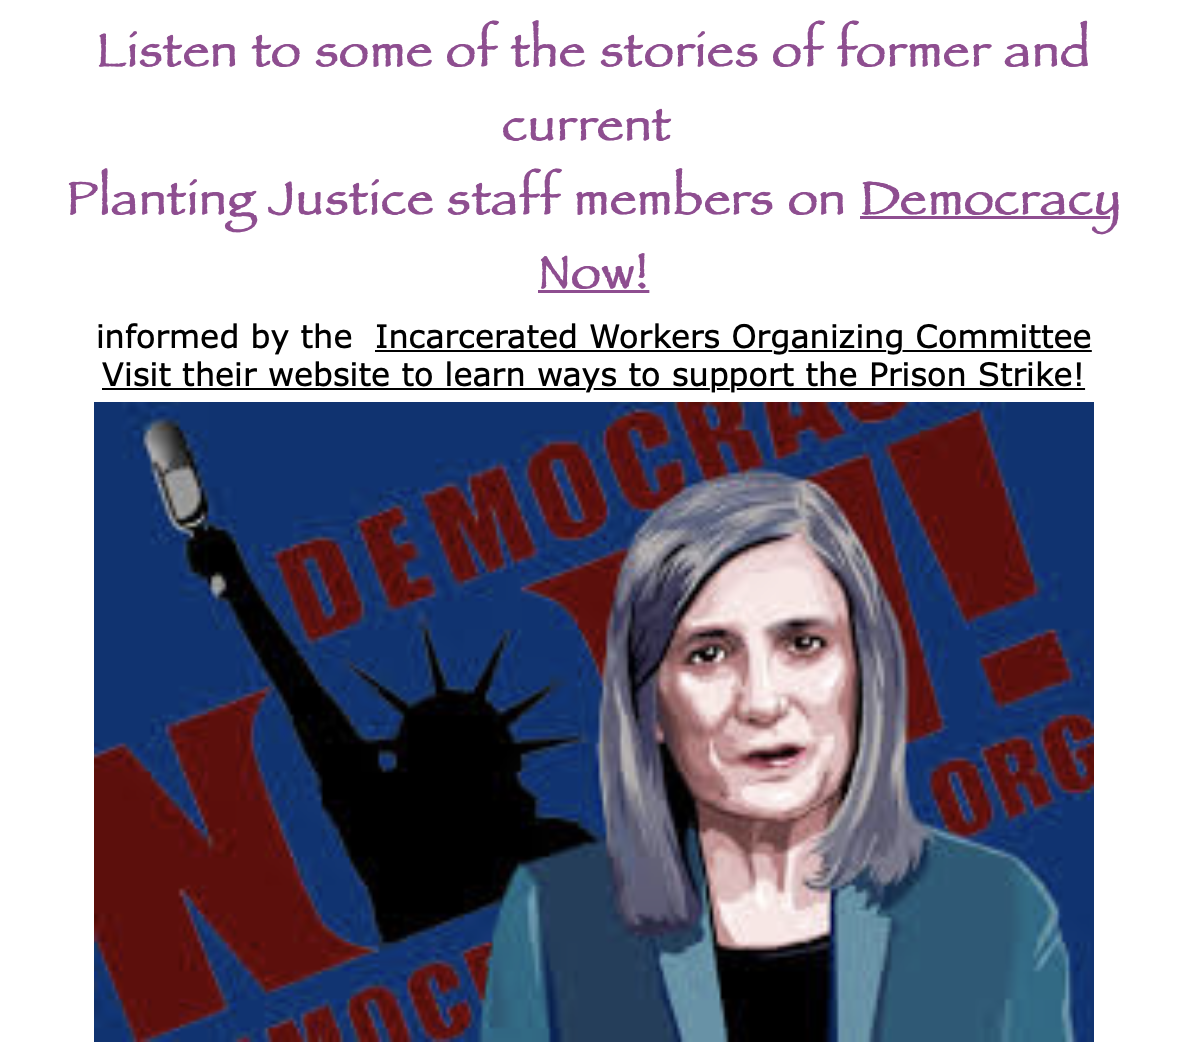 https://incarceratedworkers.org/campaigns/prison-strike-2018